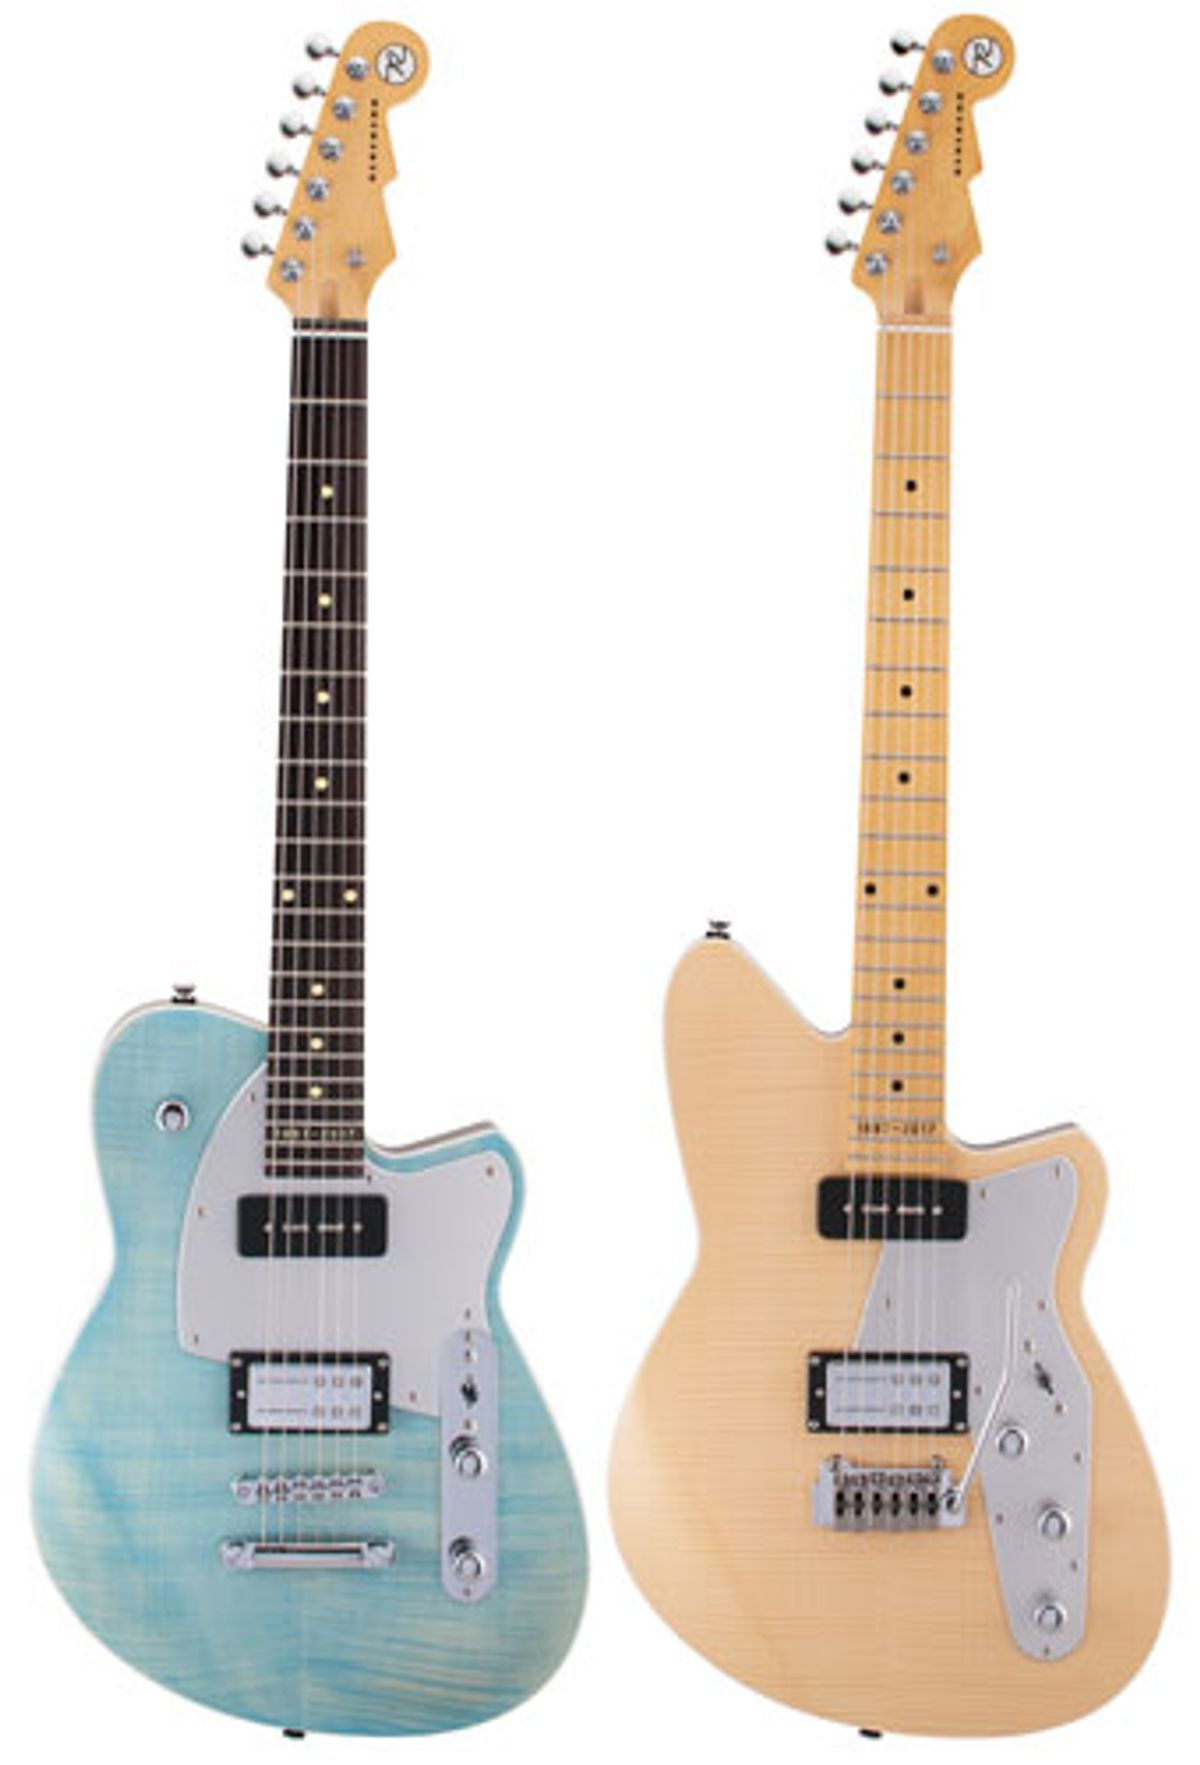 Reverend Celebrates 20th Anniversary with New Double Agent Models